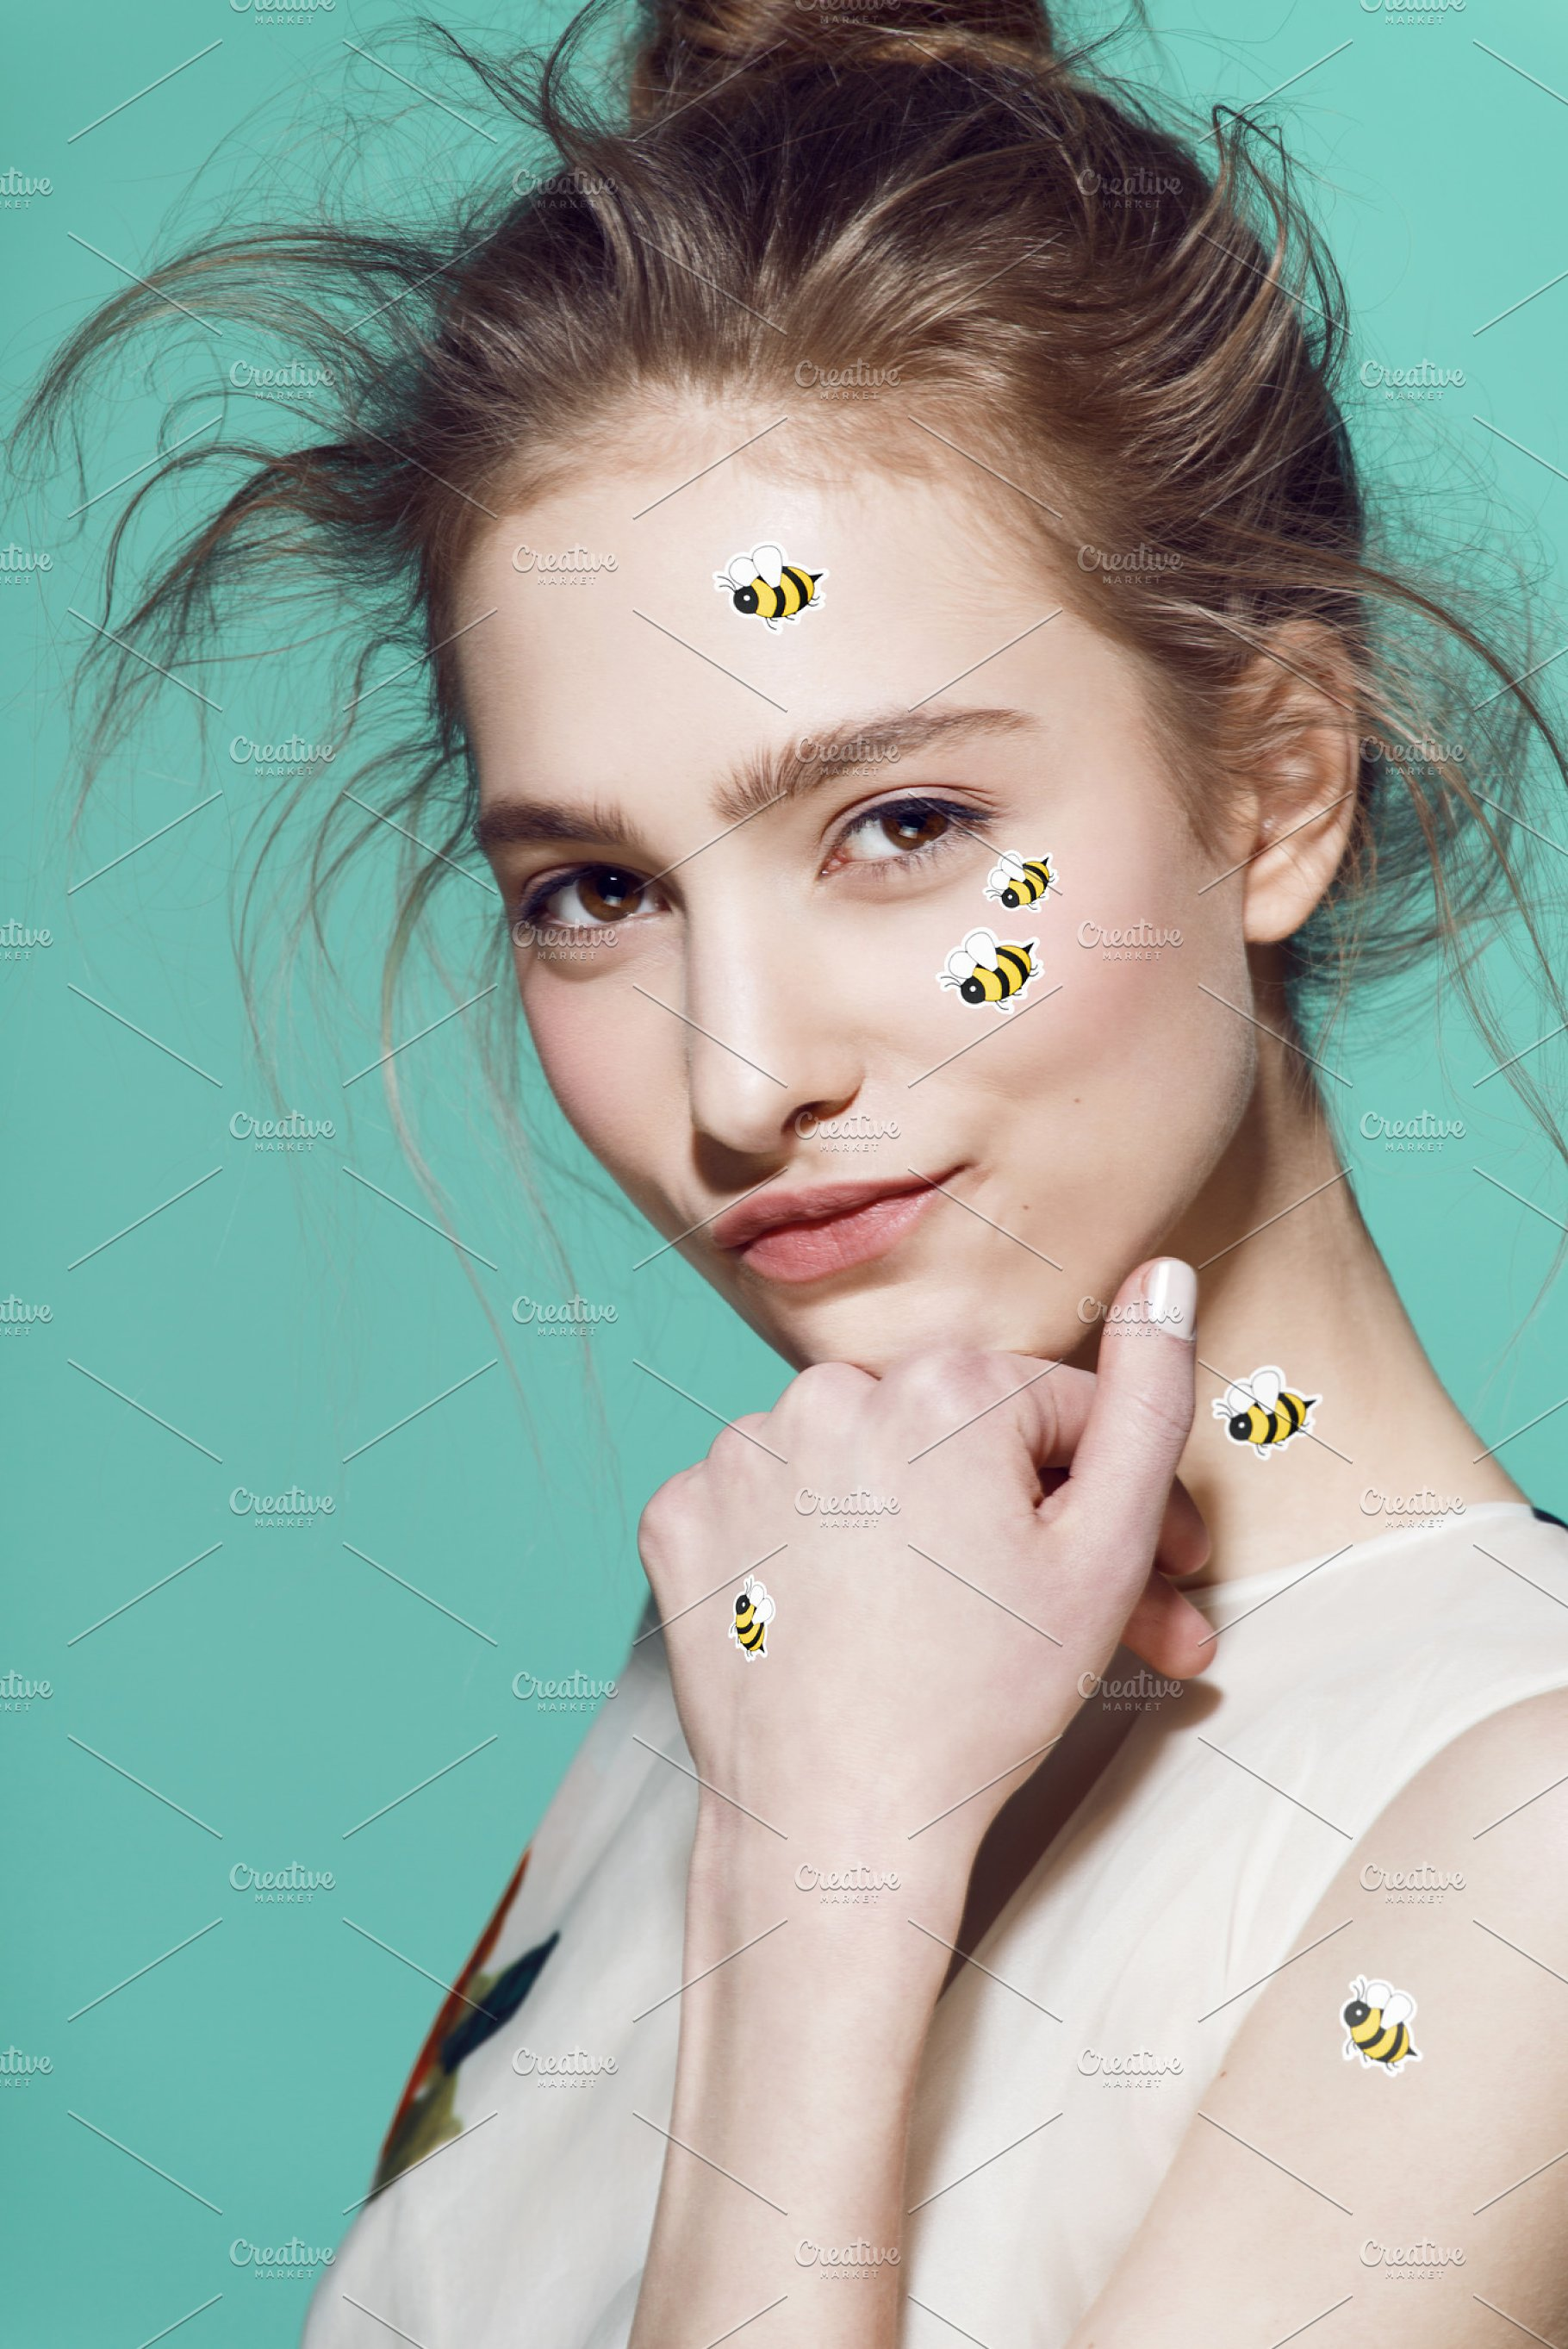 Funny make-up professional style for yong fashion model  Sticker on face